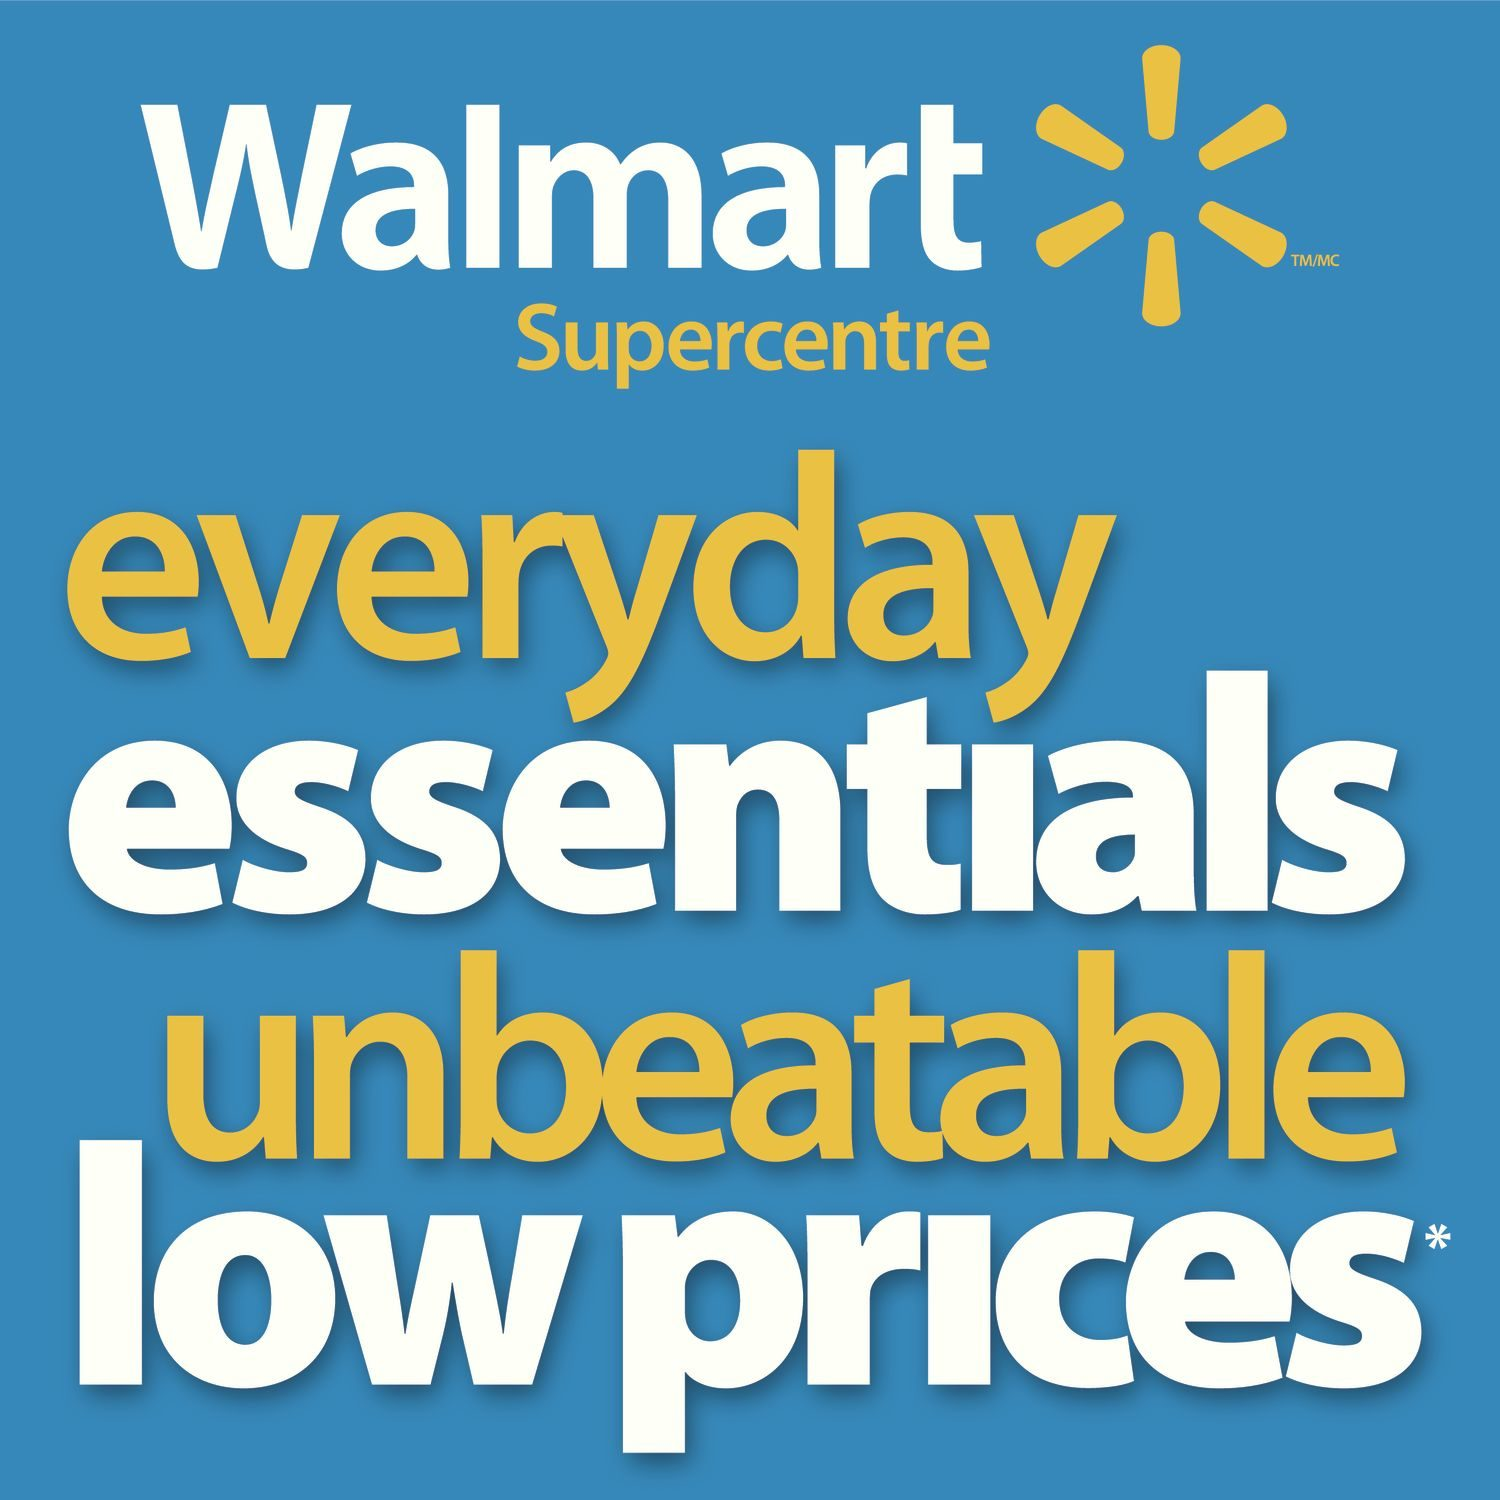 Walmart Weekly Flyer - Supercentre - Everyday Essentials - Jan 14